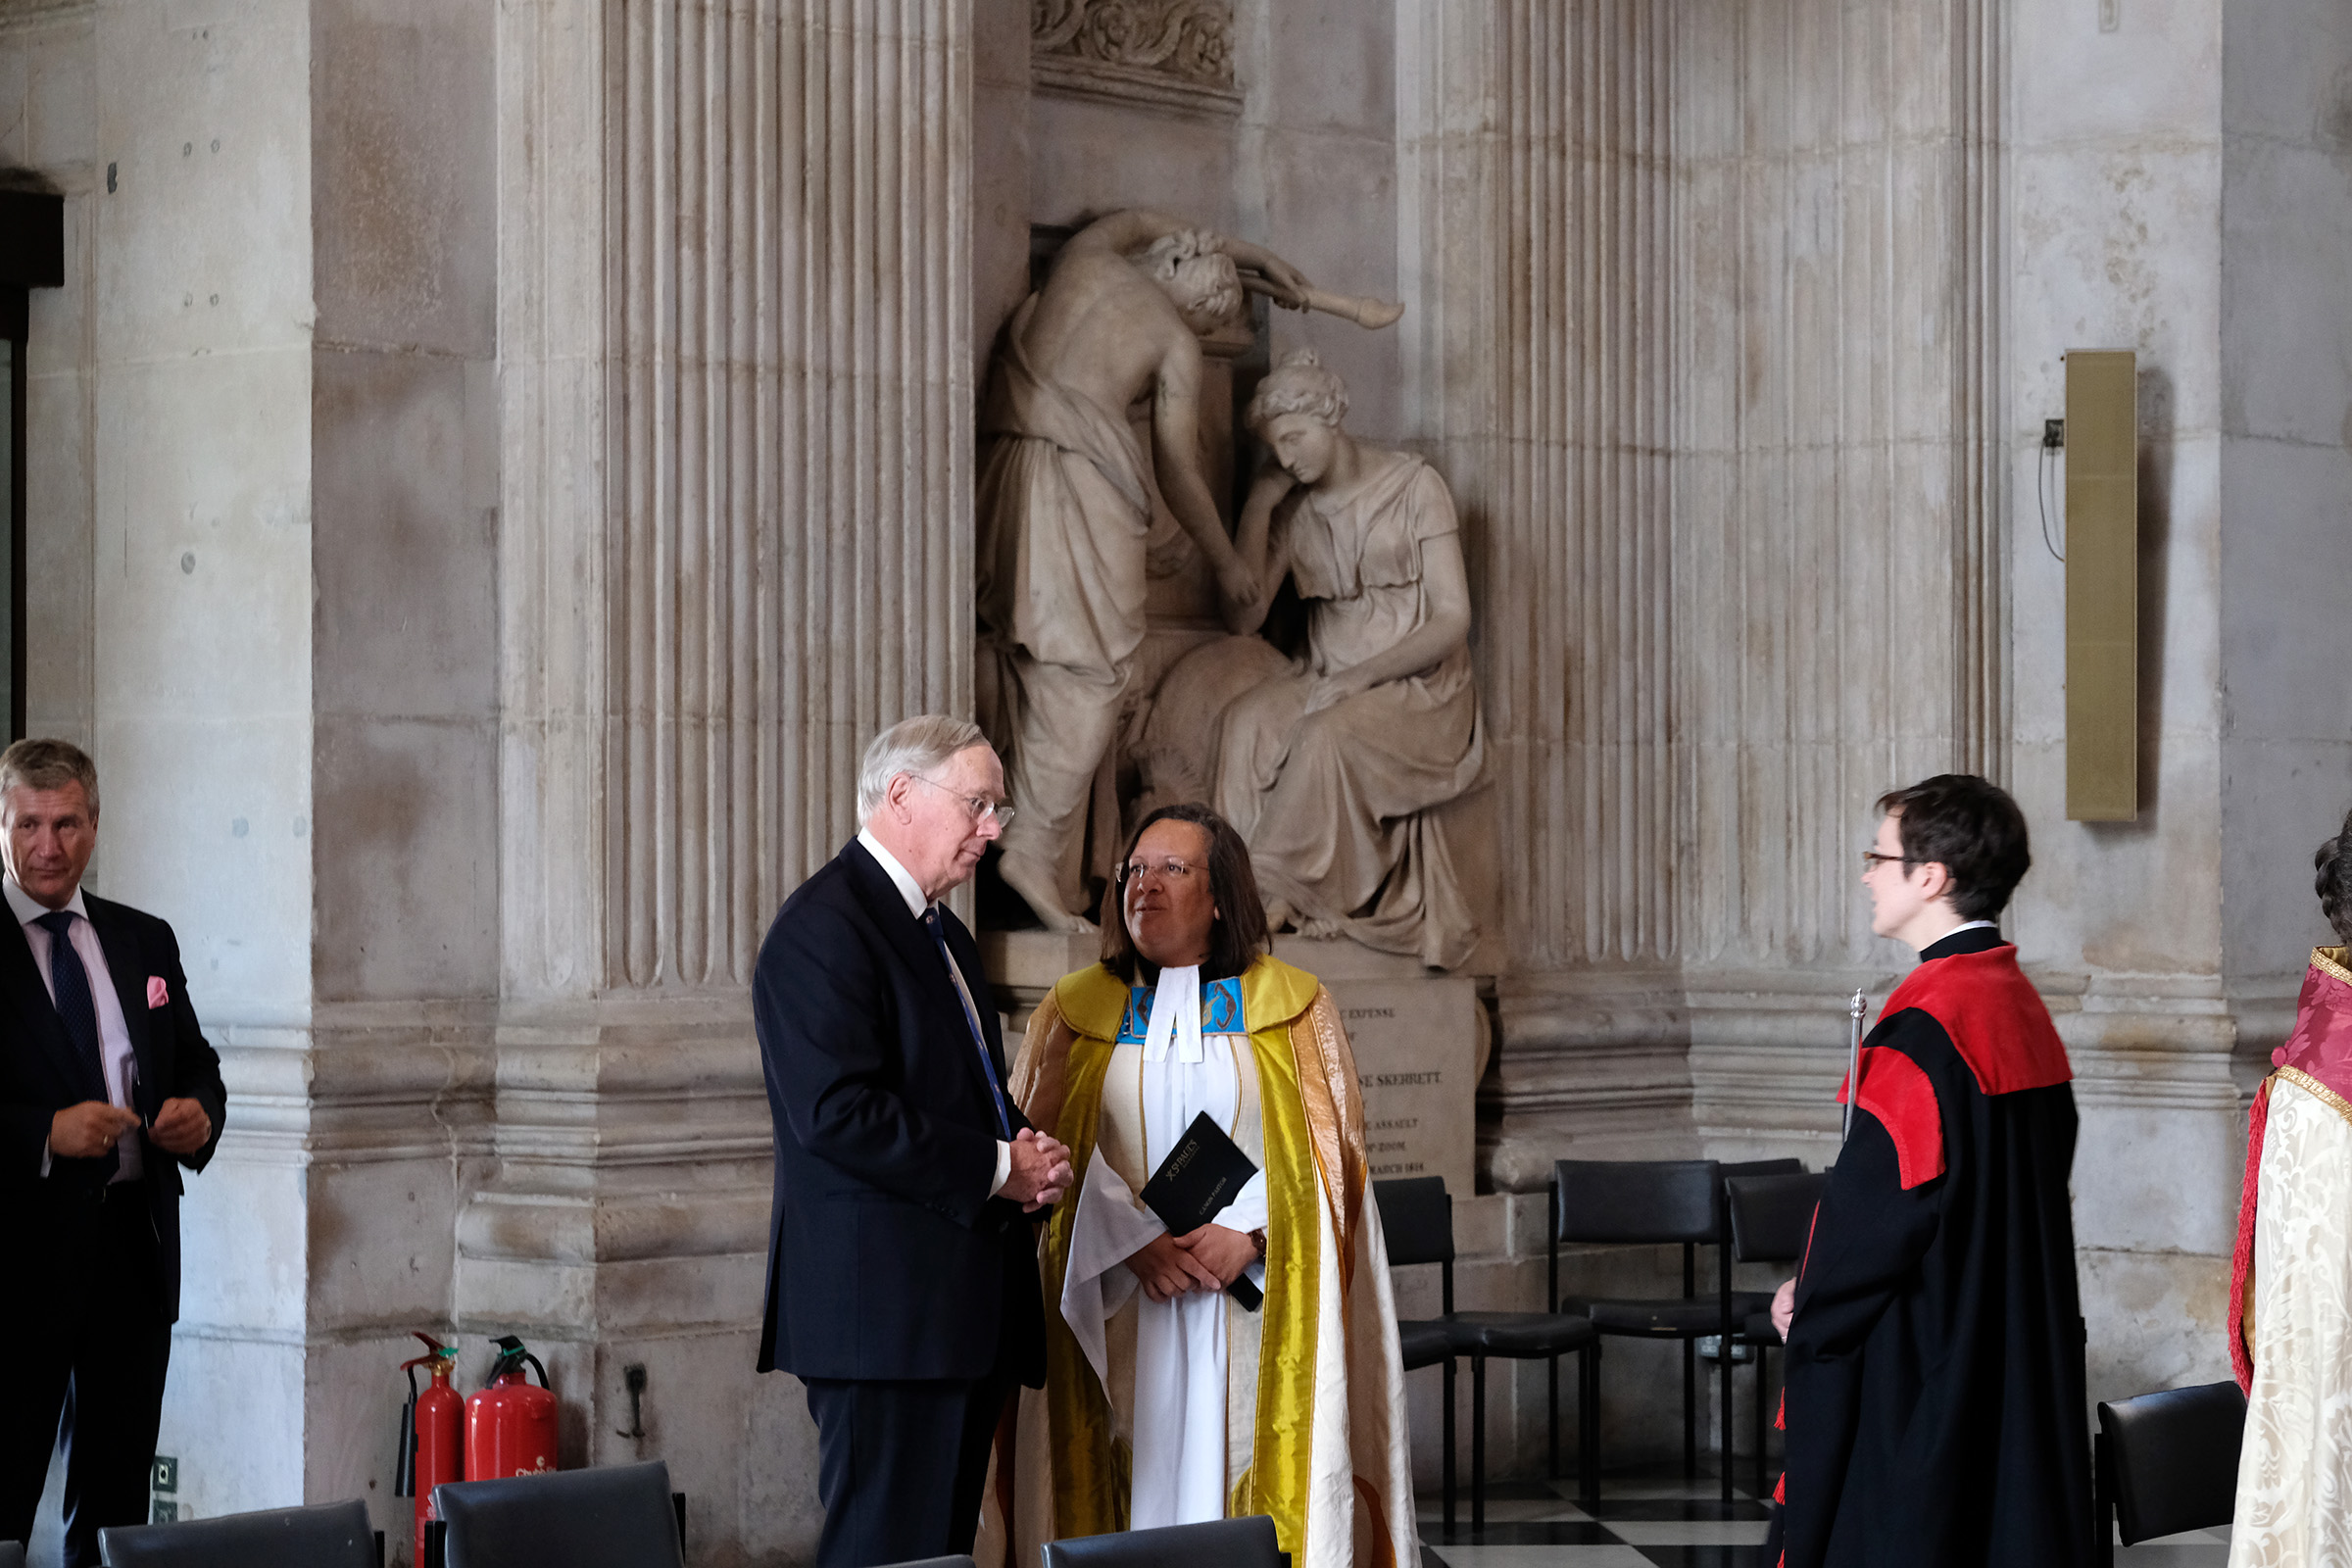 HRH the Duke of Gloucester, Rev Canon Tricia Hillas